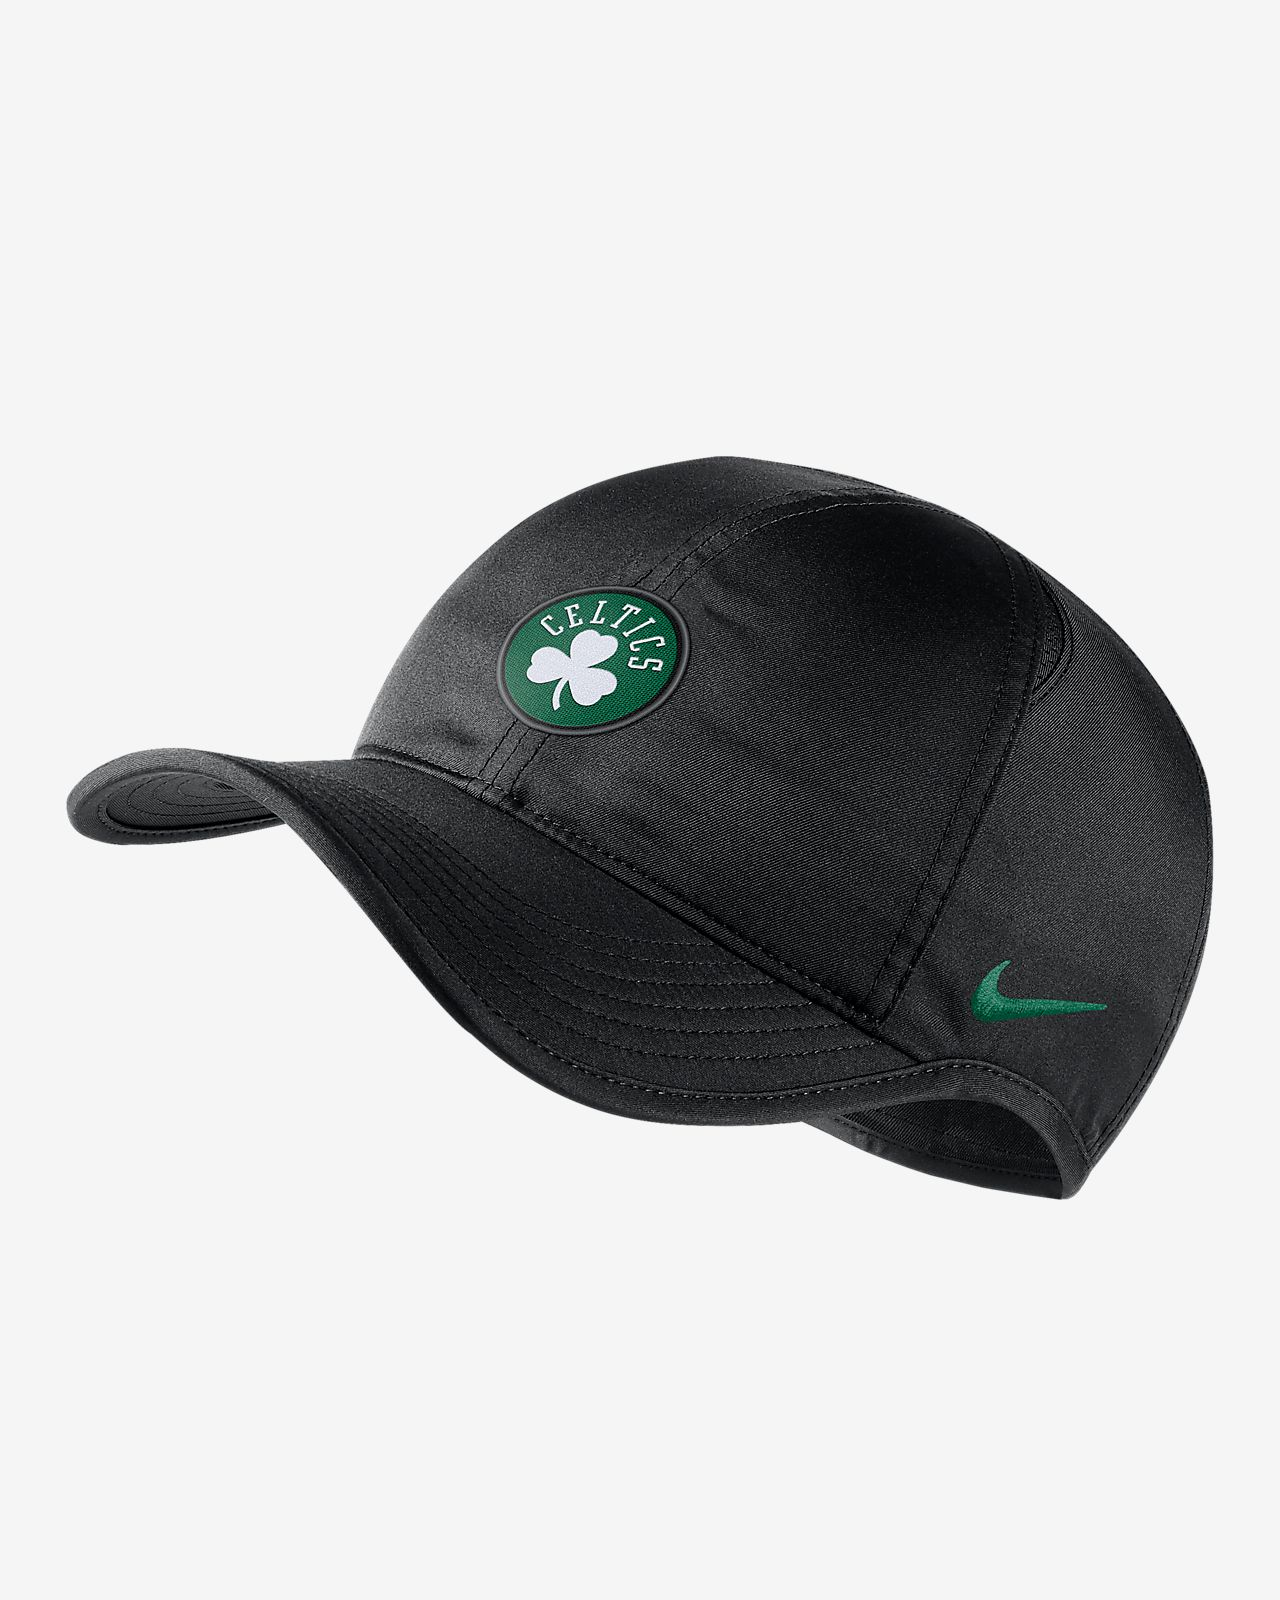 หมวก NBA Boston Celtics Nike AeroBill Featherlight